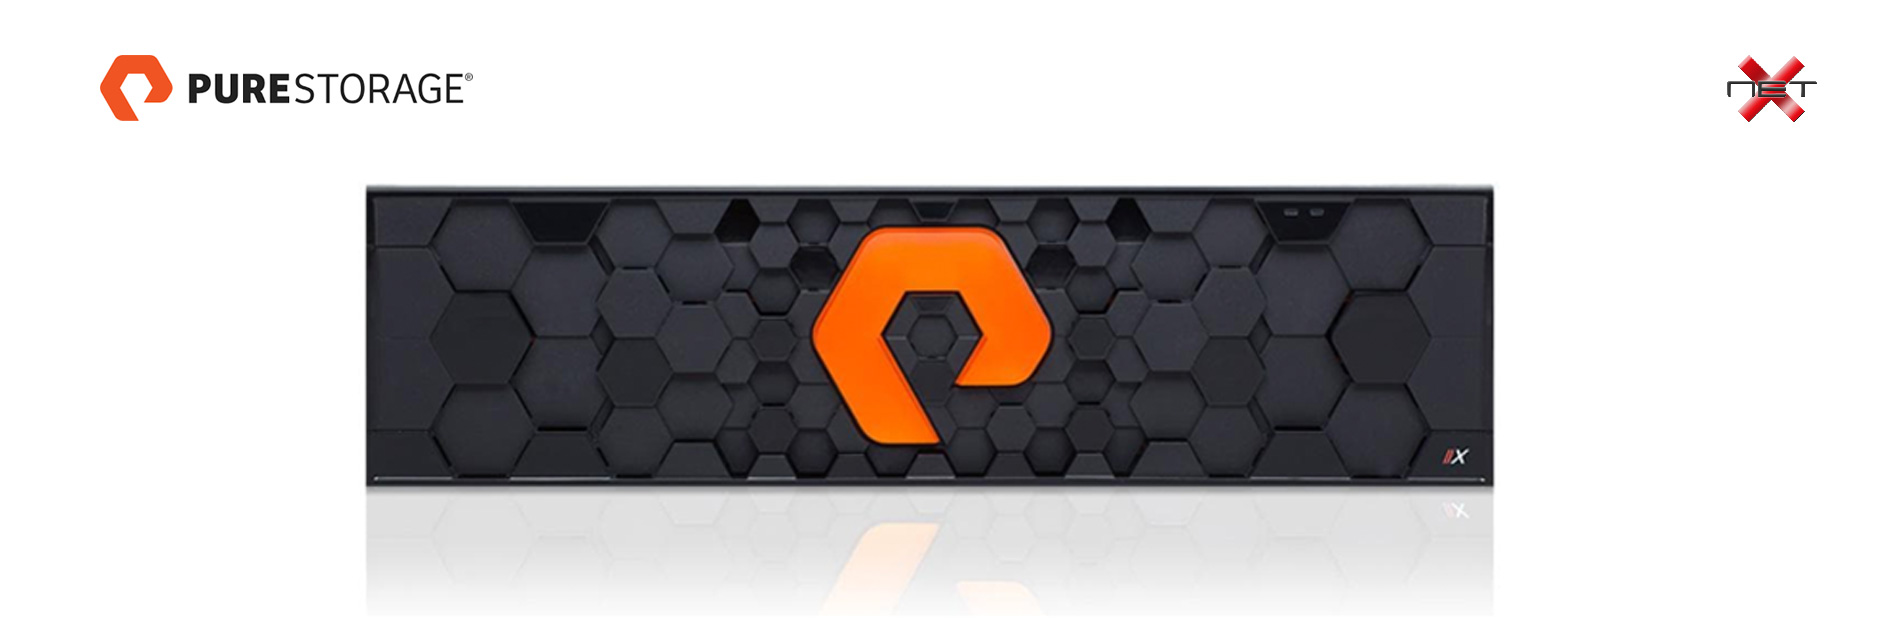 Purestorage - FlashBlade Storage with NetX